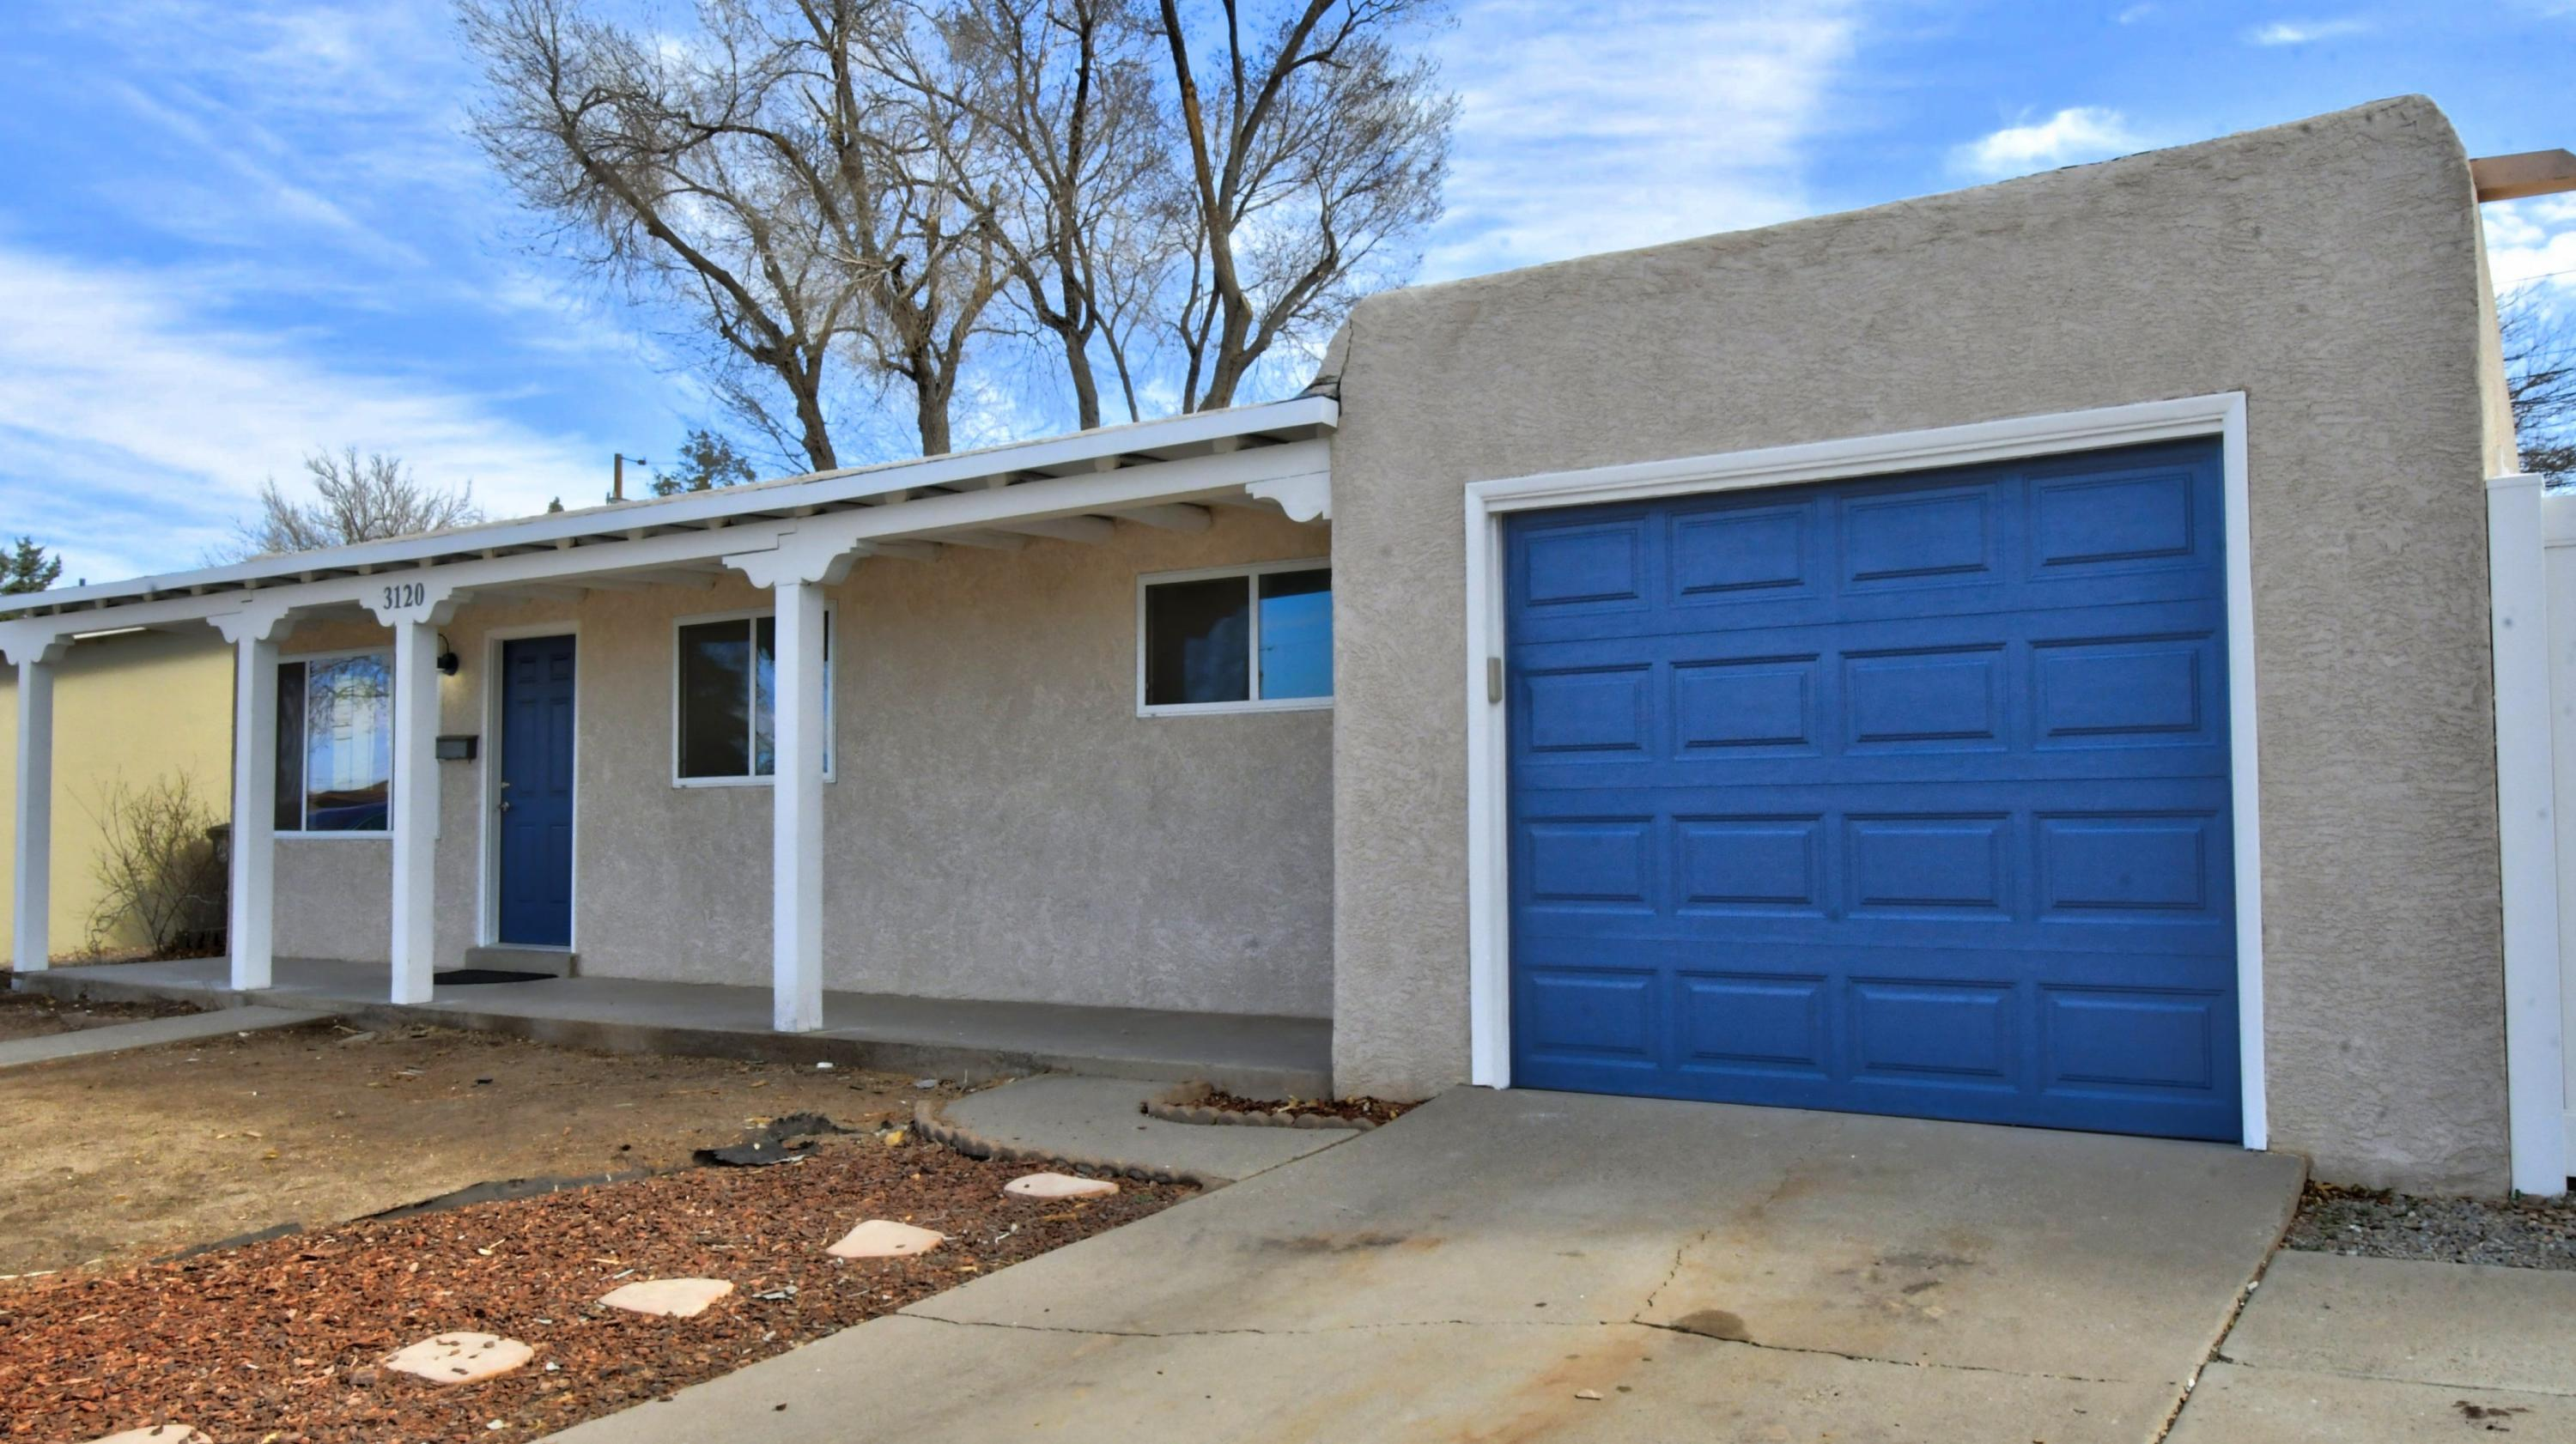 You must come see this GORGEOUS REMODEL!!!  This four bedroom two and a half  bath is completly done.  Plenty of space with two living areas and a kitchen that is just the perfect size.  The new flooring is absolutely beautiful and make the home very comfortable.  The home is freshly painted and is ready for a new home owner.  Set that appointment now because it will not last.